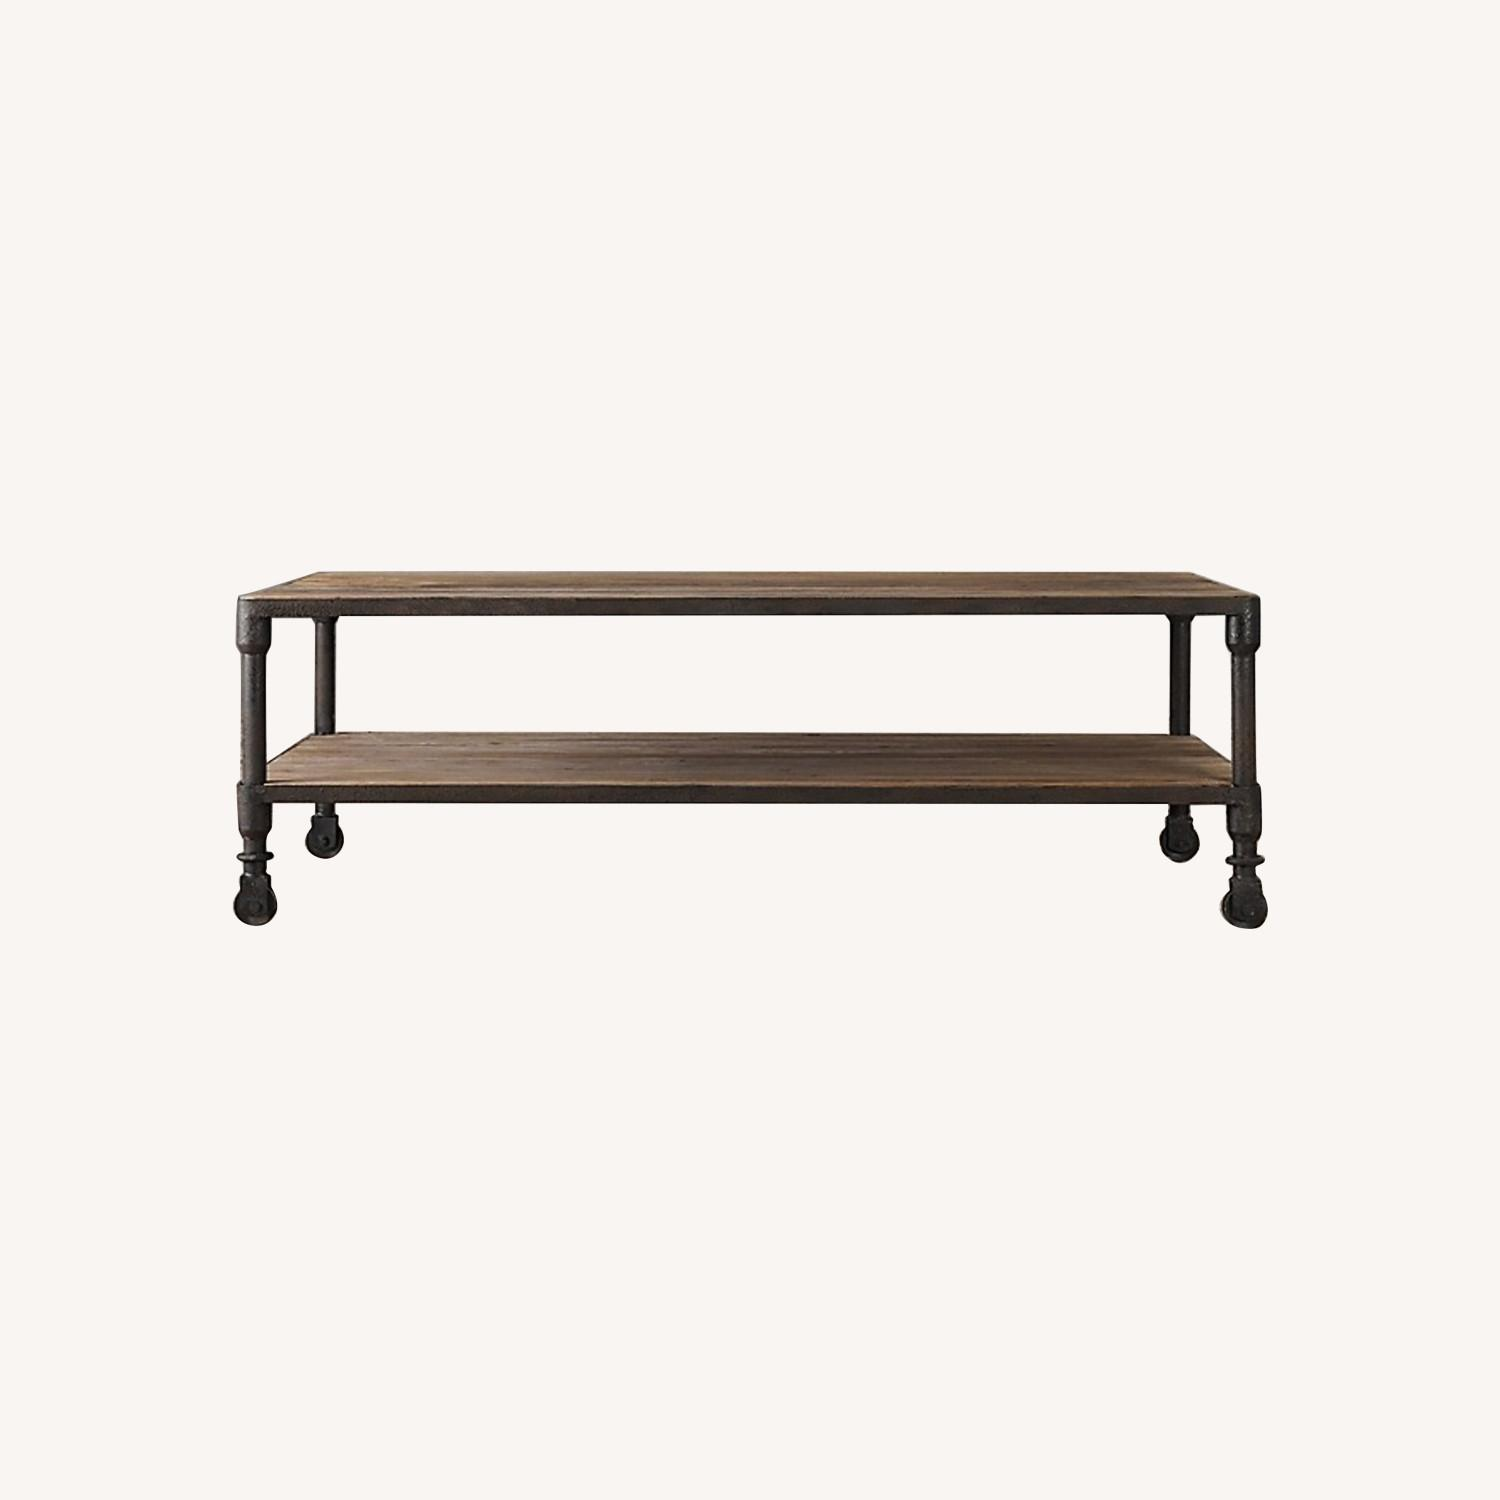 Restoration Hardware Dutch Industrial Coffee Table - image-0